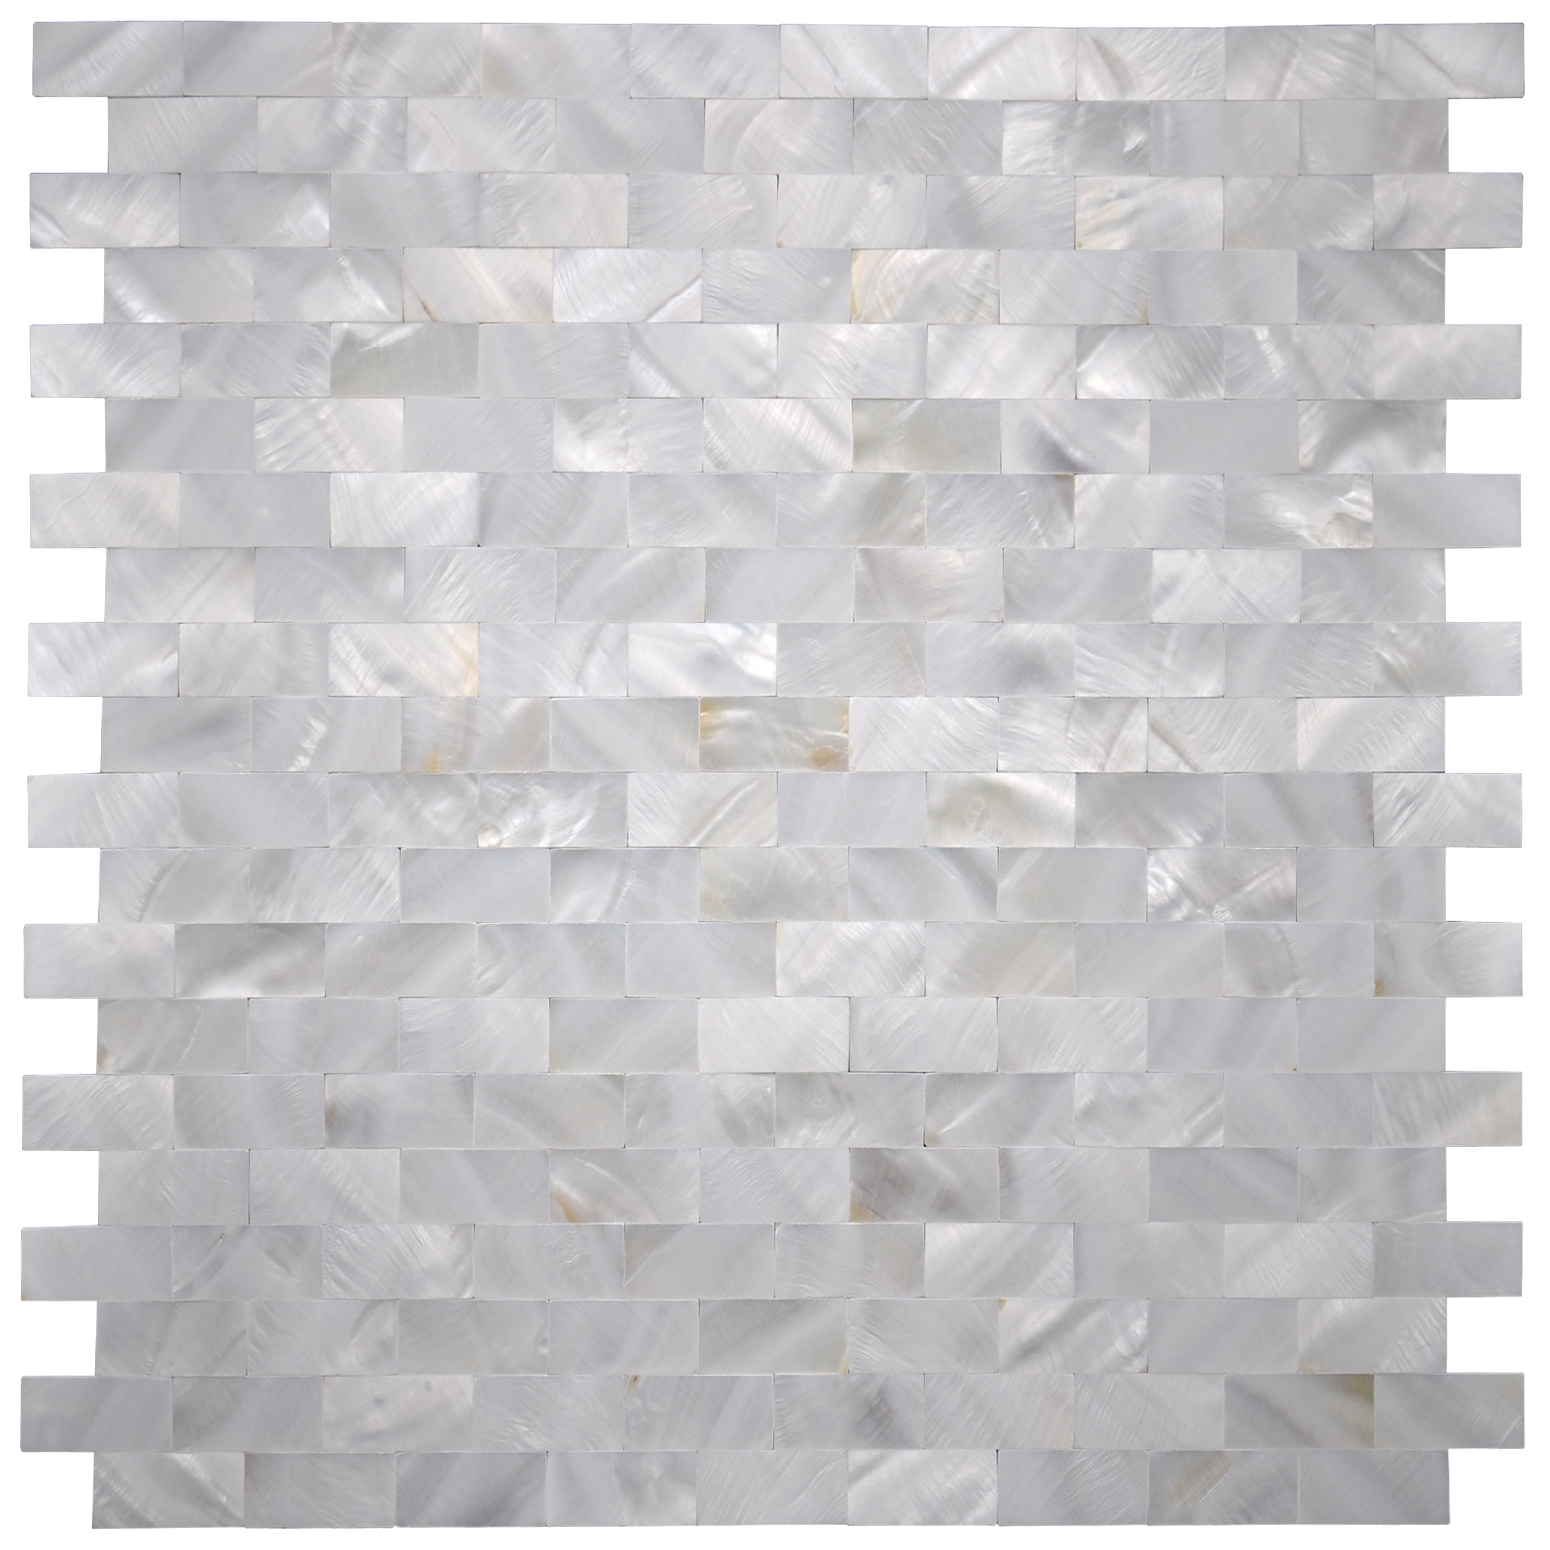 """Mother of Pearl White Shell Mosaic Tile for Kitchen Backsplashes, Bathroom Walls, Spas, Pools, 12"""" x 12"""" Seamless(6 Pack)"""